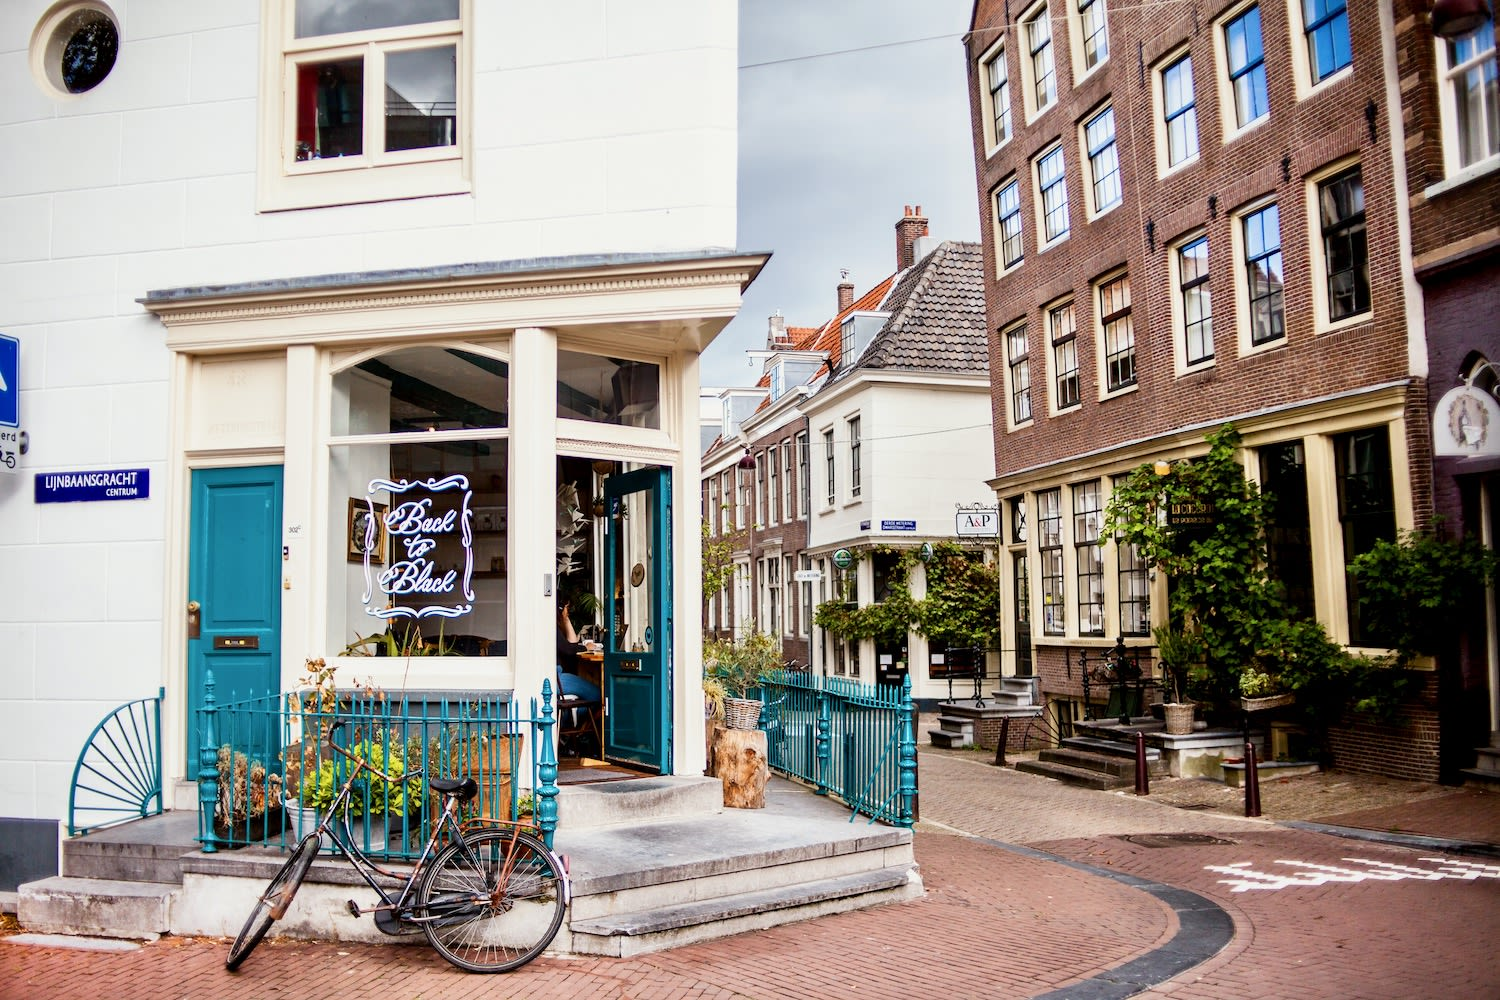 Cute Amsterdam coffee house and café has quintessential Dutch design with bicycle